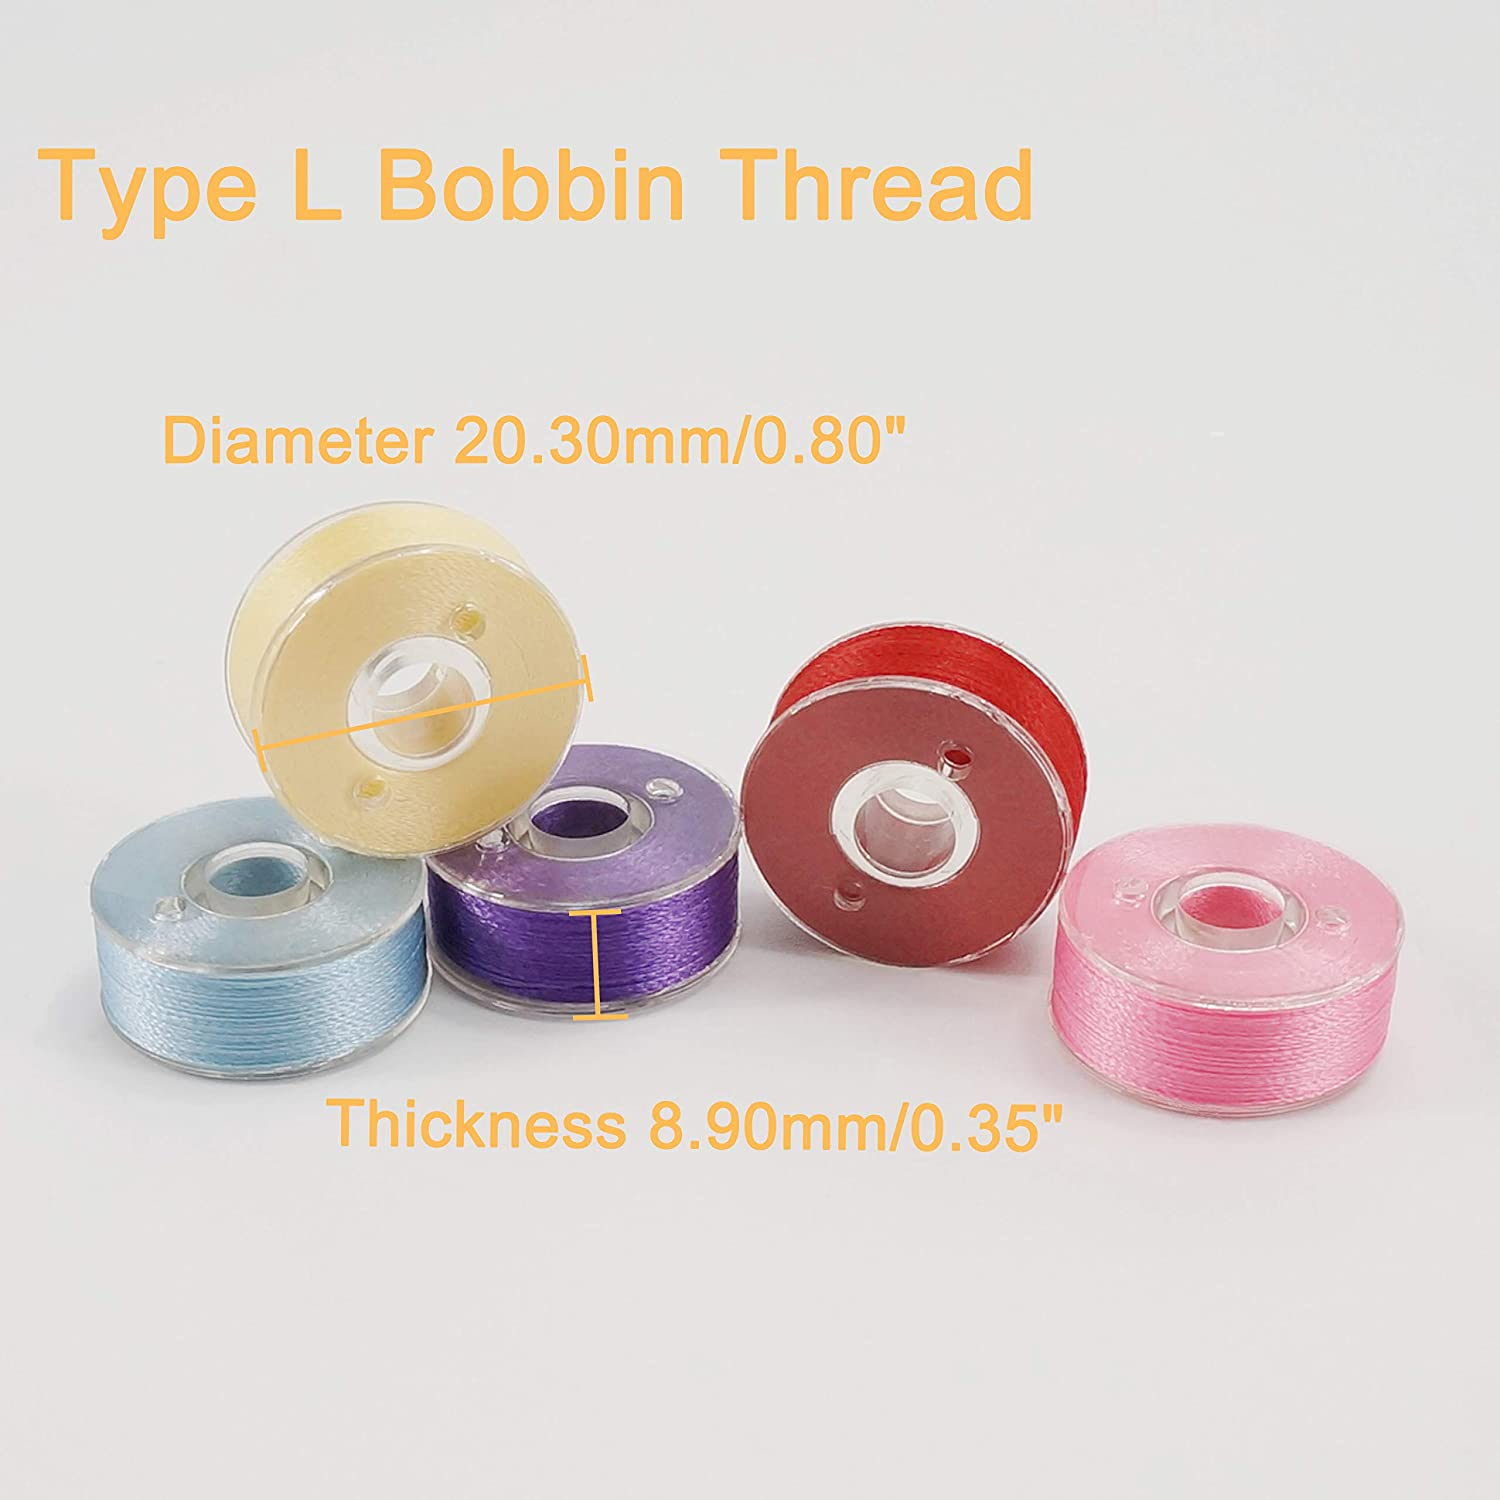 60 Weight New brothread 25pcs Type L Size Assorted Colors Prewound Bobbin Thread Plastic Side for Particular Embroidery and Sewing Machines